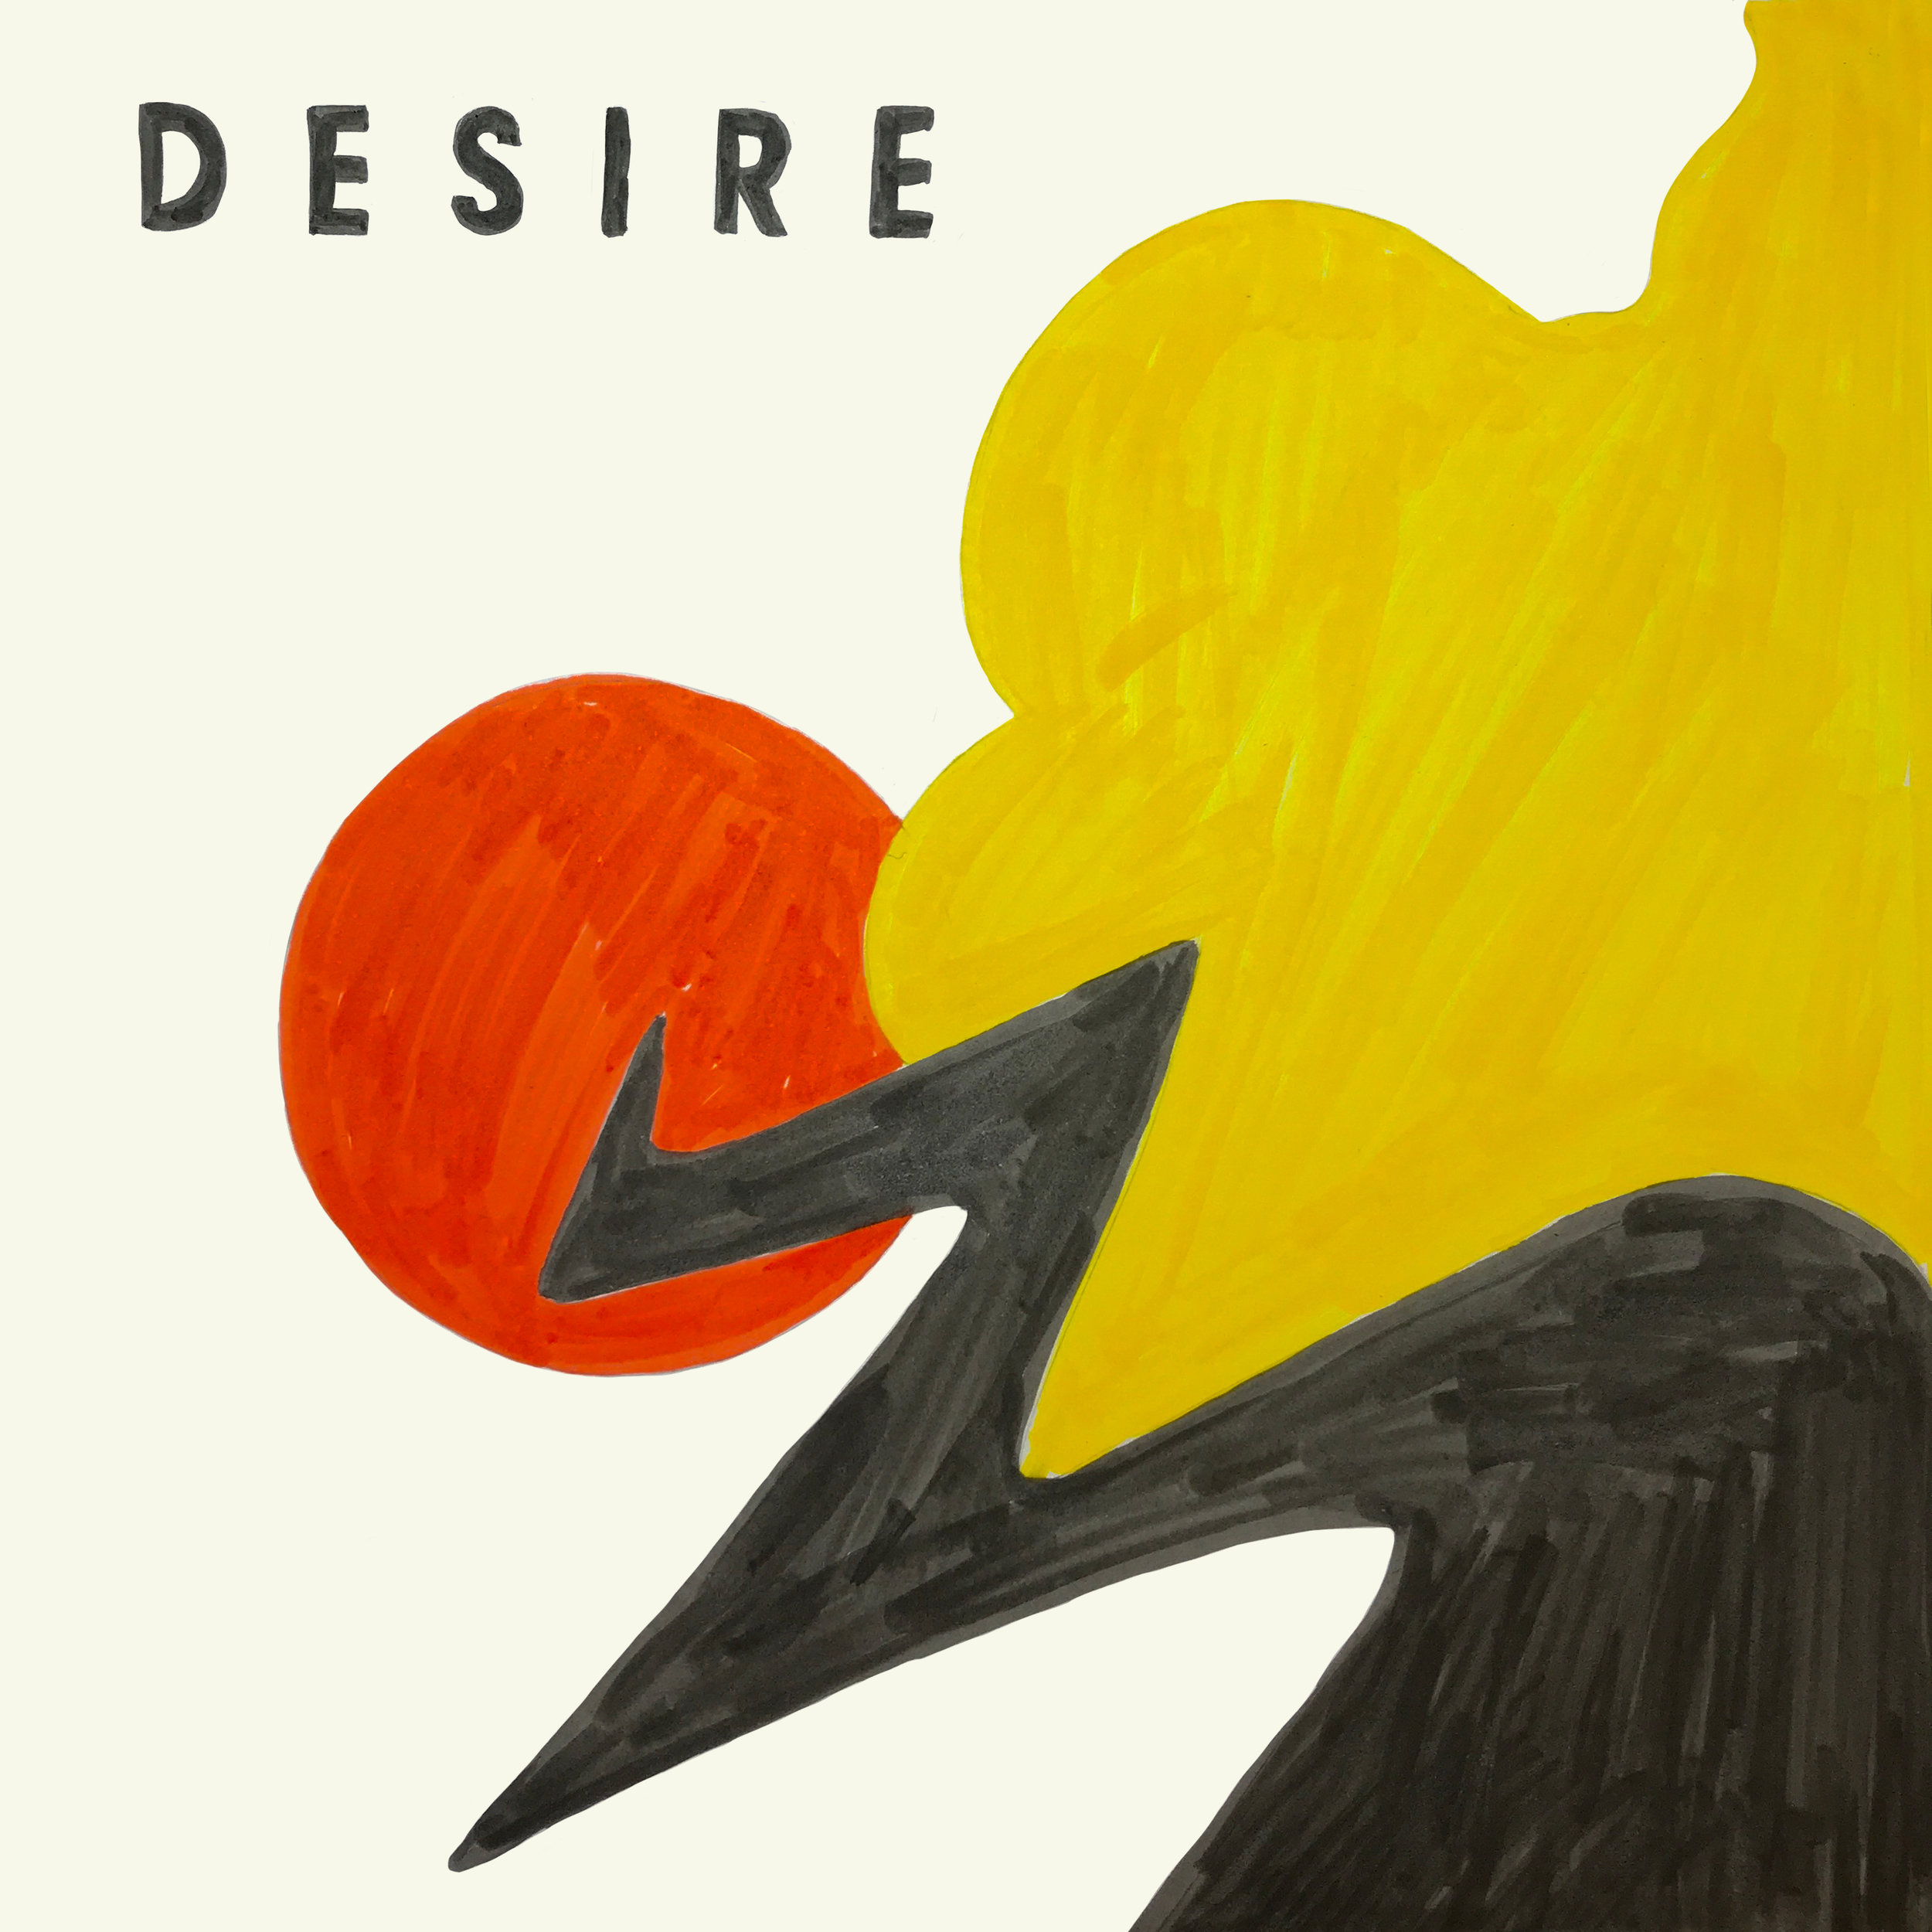 WCR 093 - Bichkraft - Desire - Cover Image w_ Words.jpg